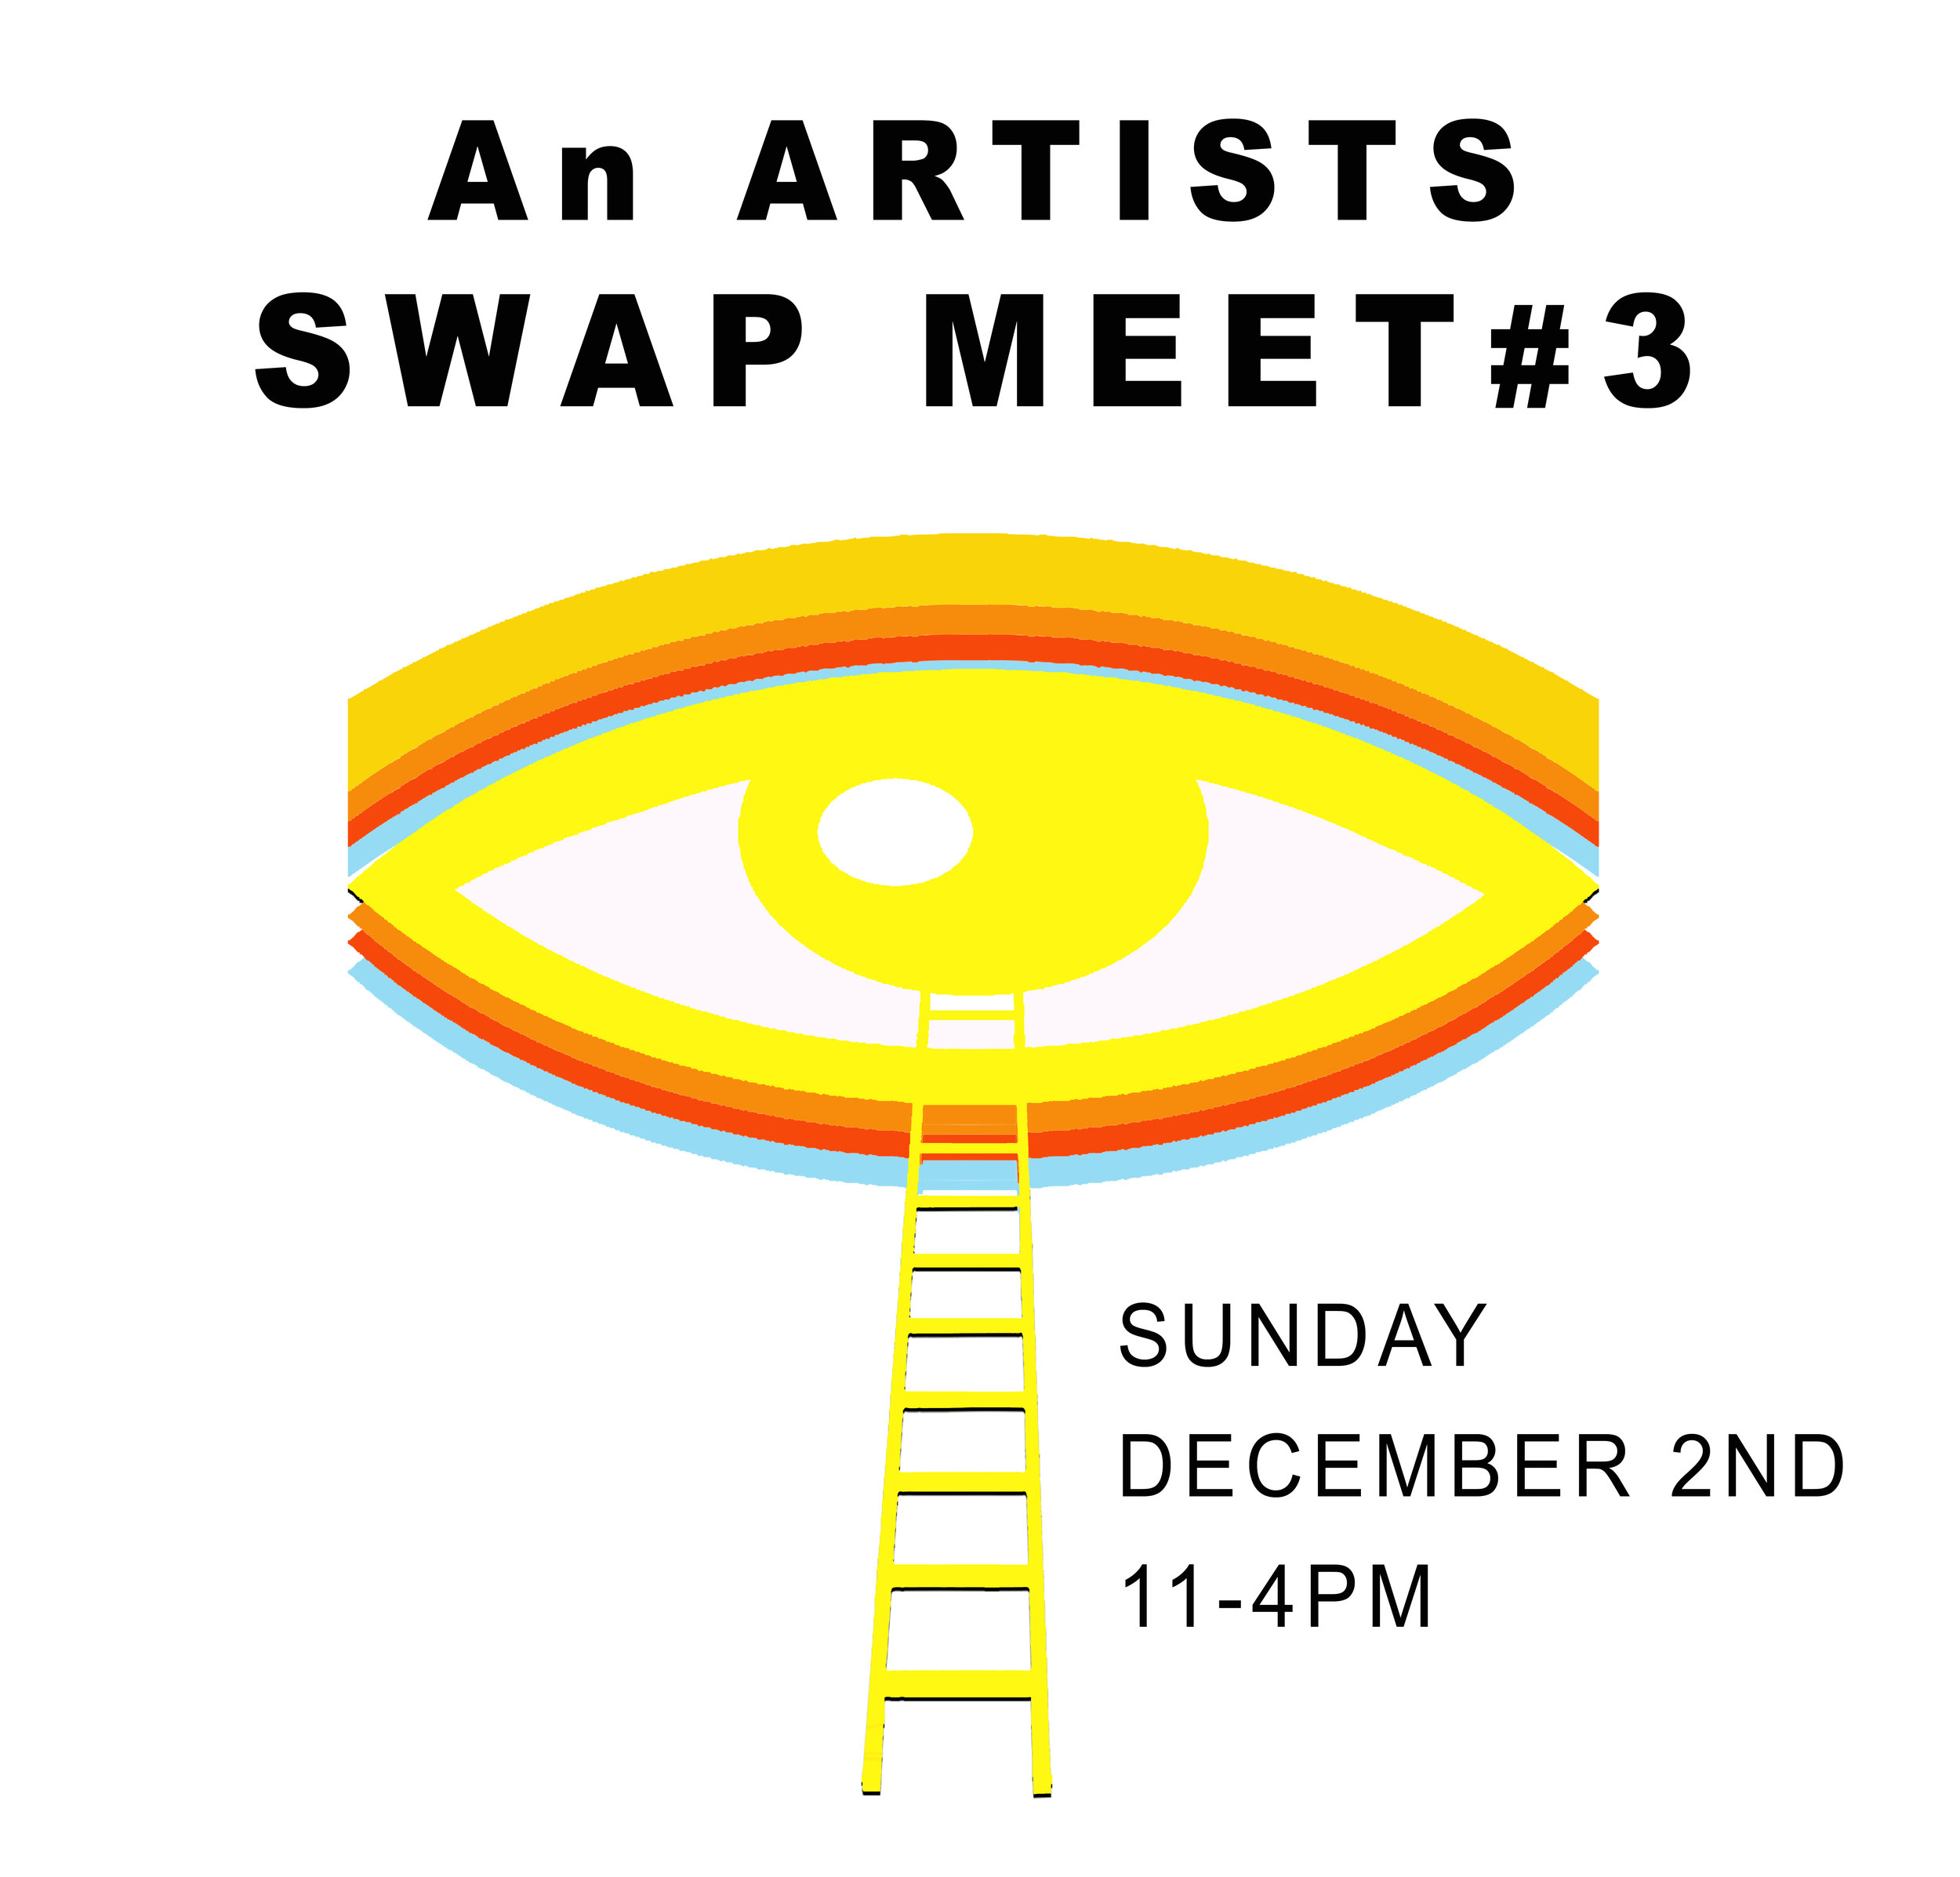 """- ODD ARK • LA invites you to the Third Artists Swap-Meet!When: 12/02/2018 11-4pmLocation: the large parking lot at ODD ARK • LA, 7101 North Figueroa St. 90042What is it?A happening, exhibition, sale, community gathering, cultural exchange and an opportunity to recycle and reduce our environmental footprint. Participants:artists, artist collectives, artists run spaces, art publications.>>> OVER 40 PARTICIPANTS with the work of over 100 artists presented! Exhibition and sale of:original works editionsspecial projects art catalogs and art magazines""""failed"""" works art supplies and toolsstudio furniture studio bric-a-bracTrading:work books and magssupplies info and stories*Event curated by opportunity, chance and serendipity.Participants keep 100% of sales!"""